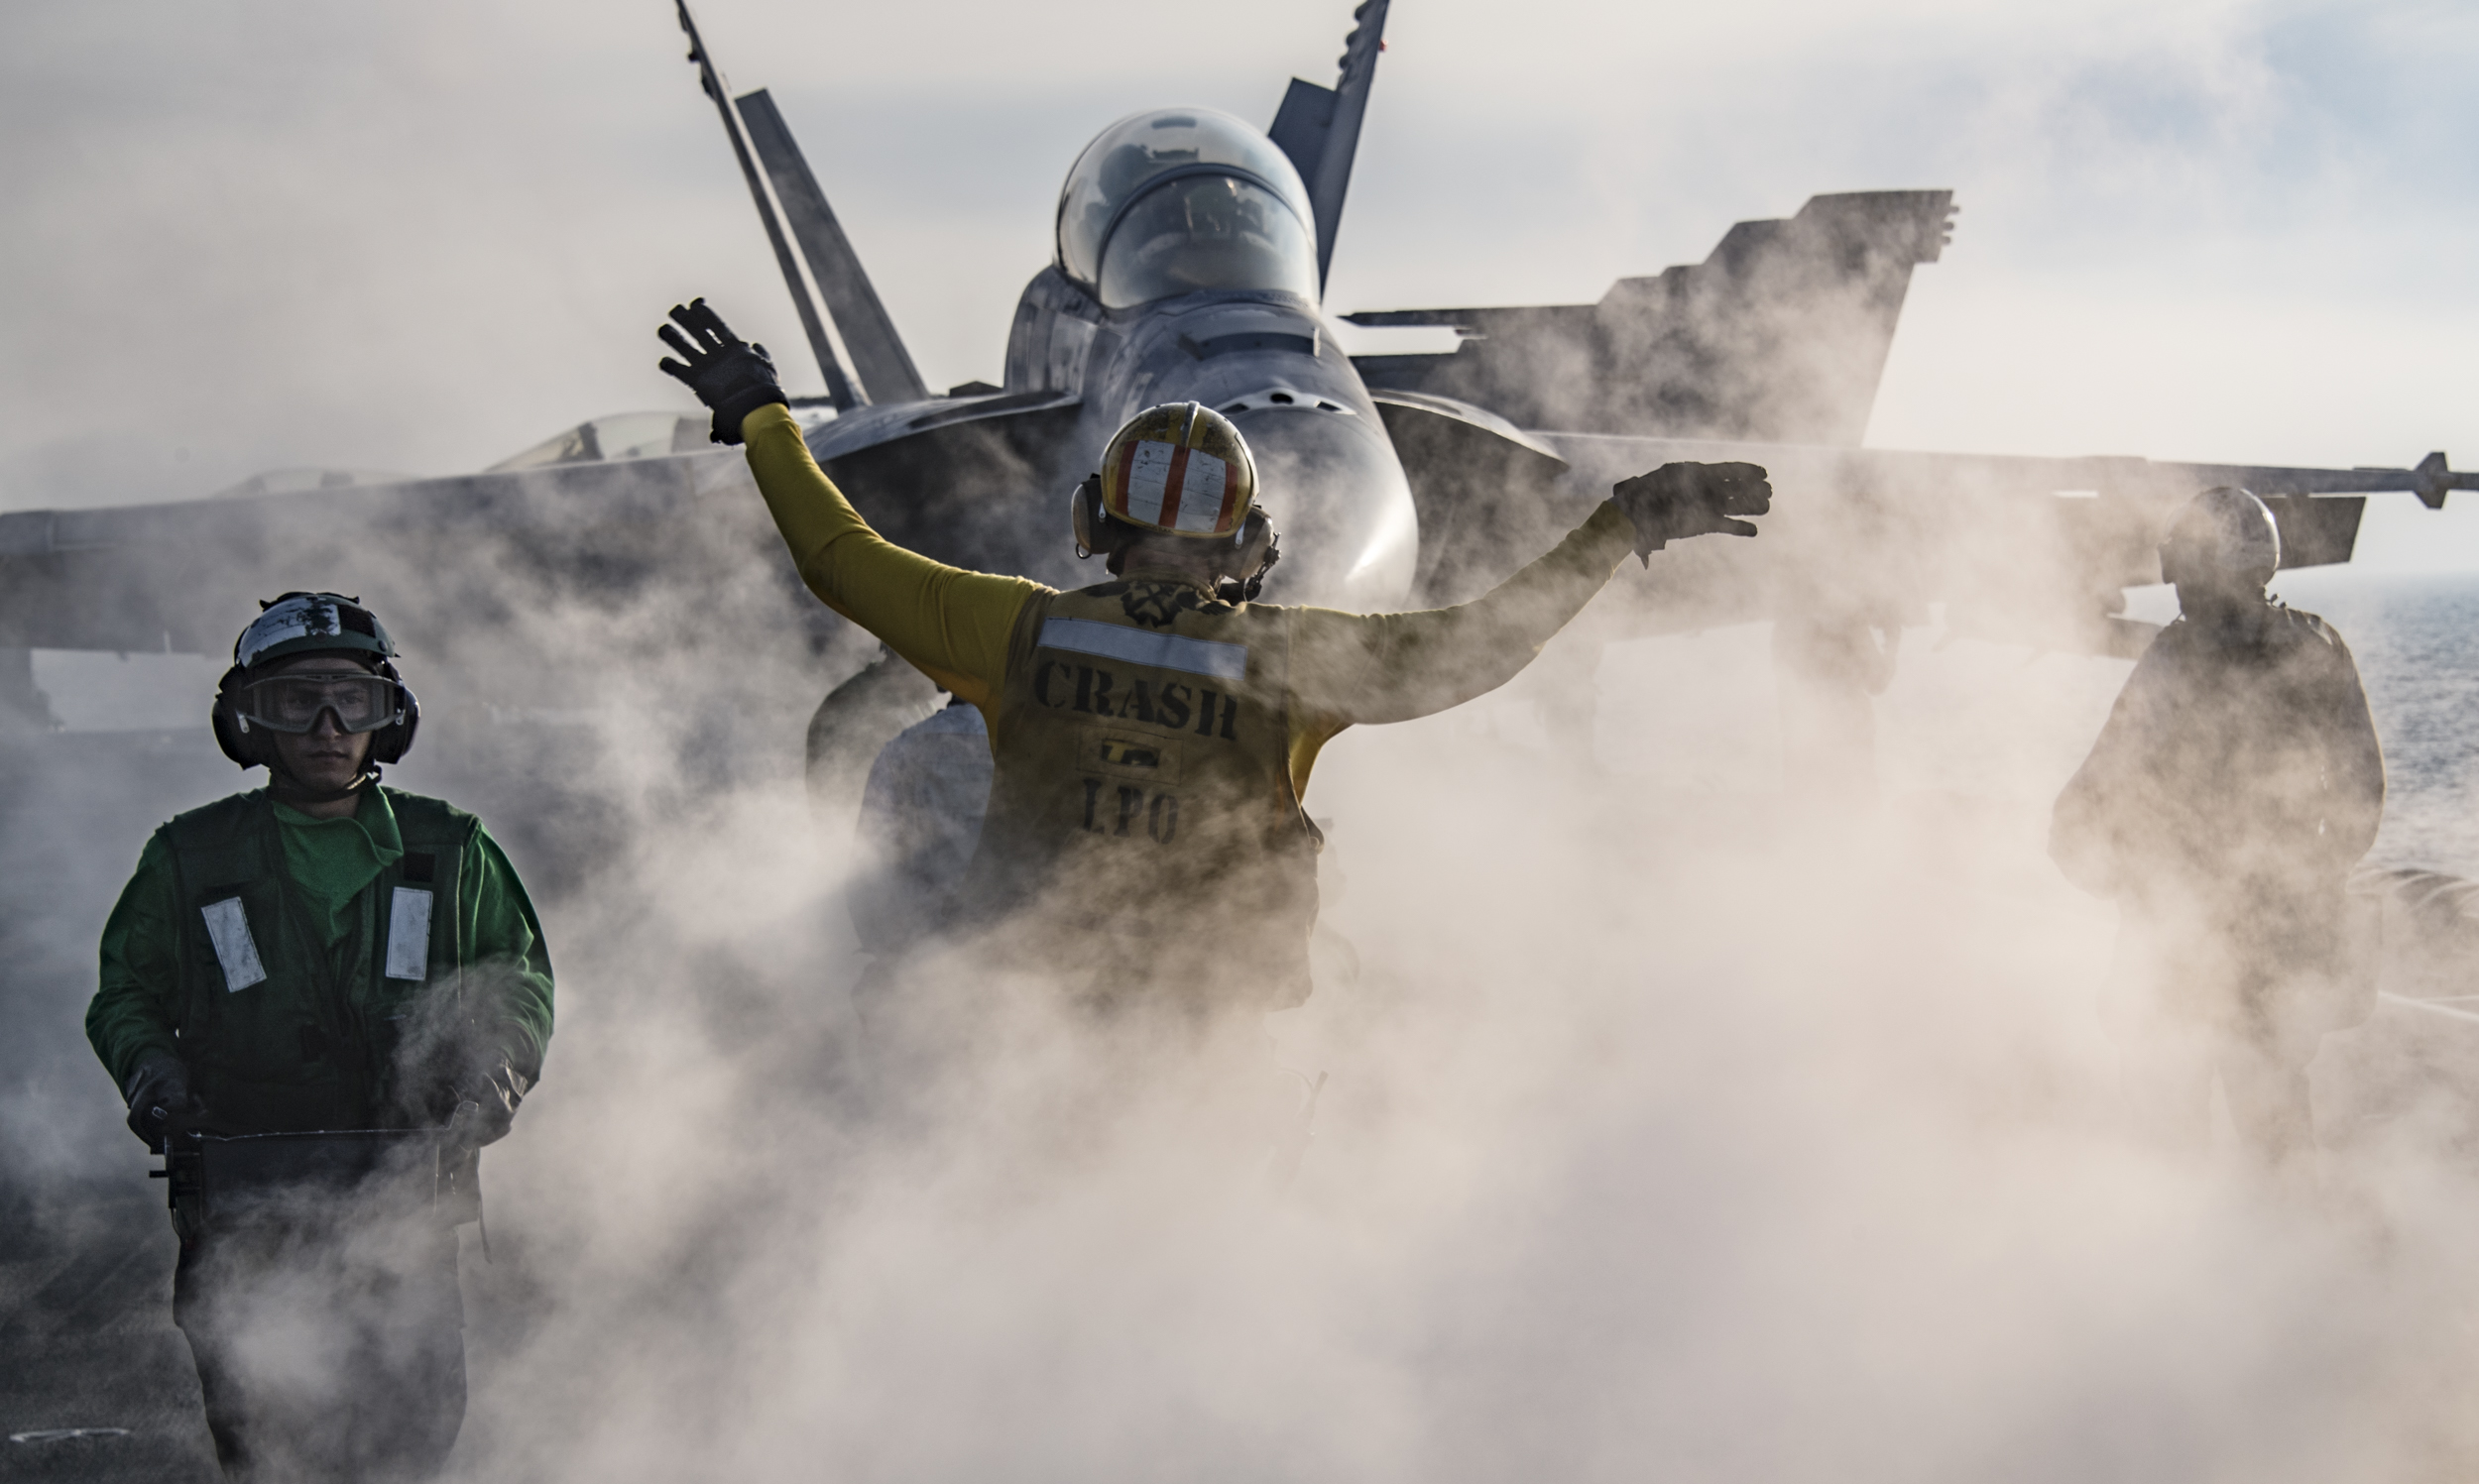 Sailors participate in flight operations on the flight deck of Nimitz-class aircraft carrier USS Carl Vinson (CVN 70). Carl Vinson Strike Group is currently operating in the Western Pacific as part of a regularly scheduled deployment. (MCS3 Dylan M. Kinee/Navy)